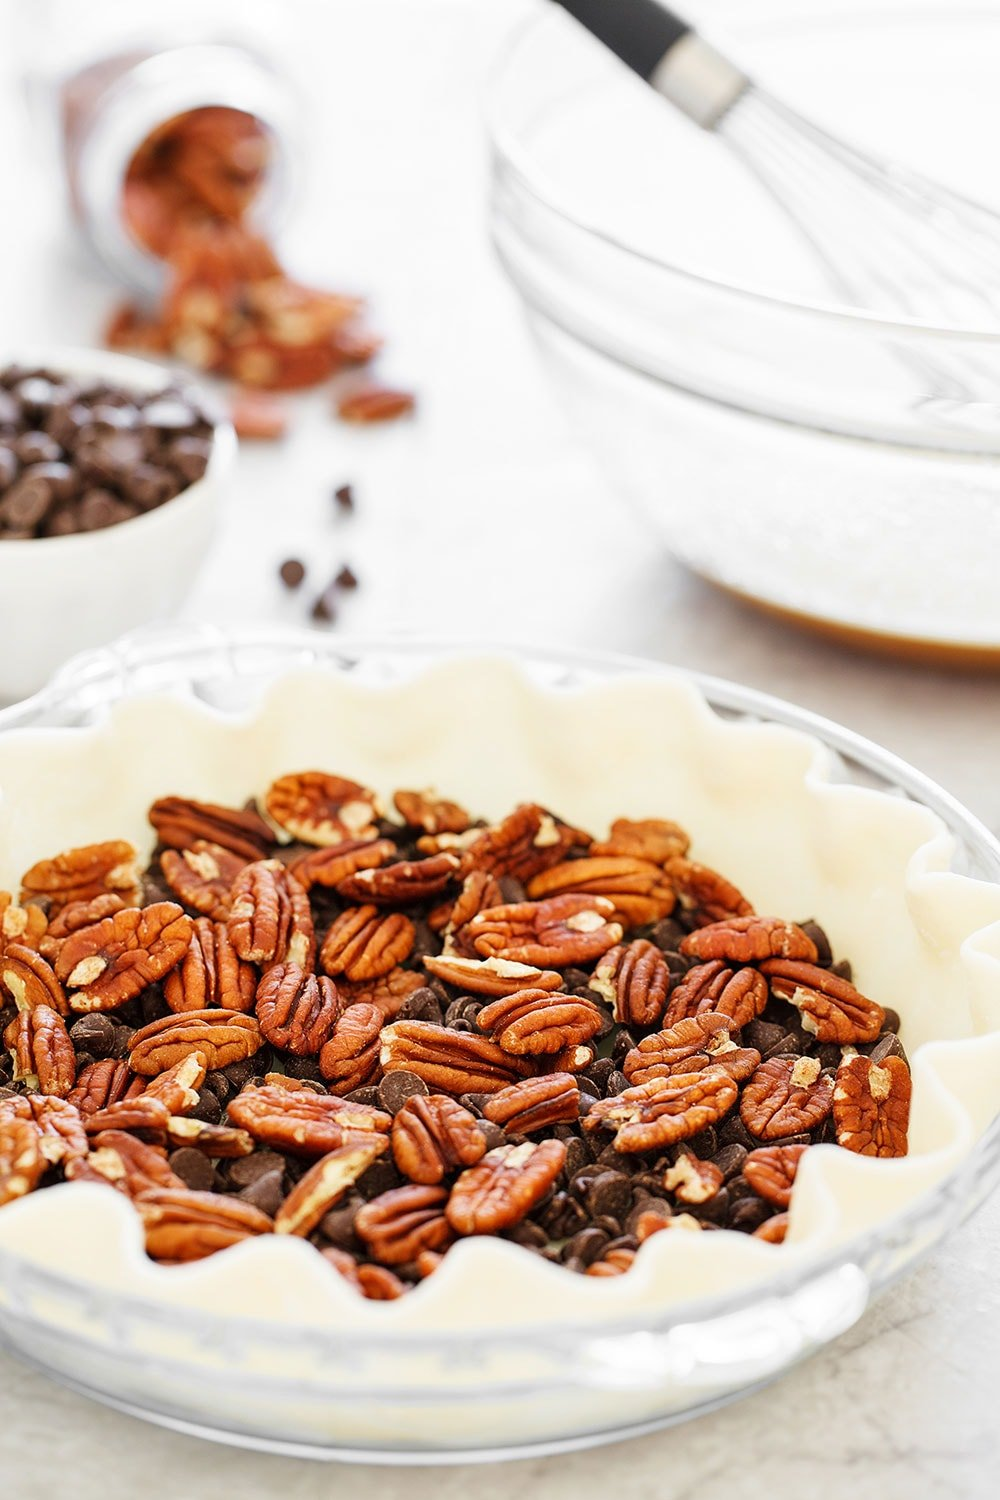 Homemade chocolate pecan pie in buttery pie dough ready to bake in the oven for Thanksgiving